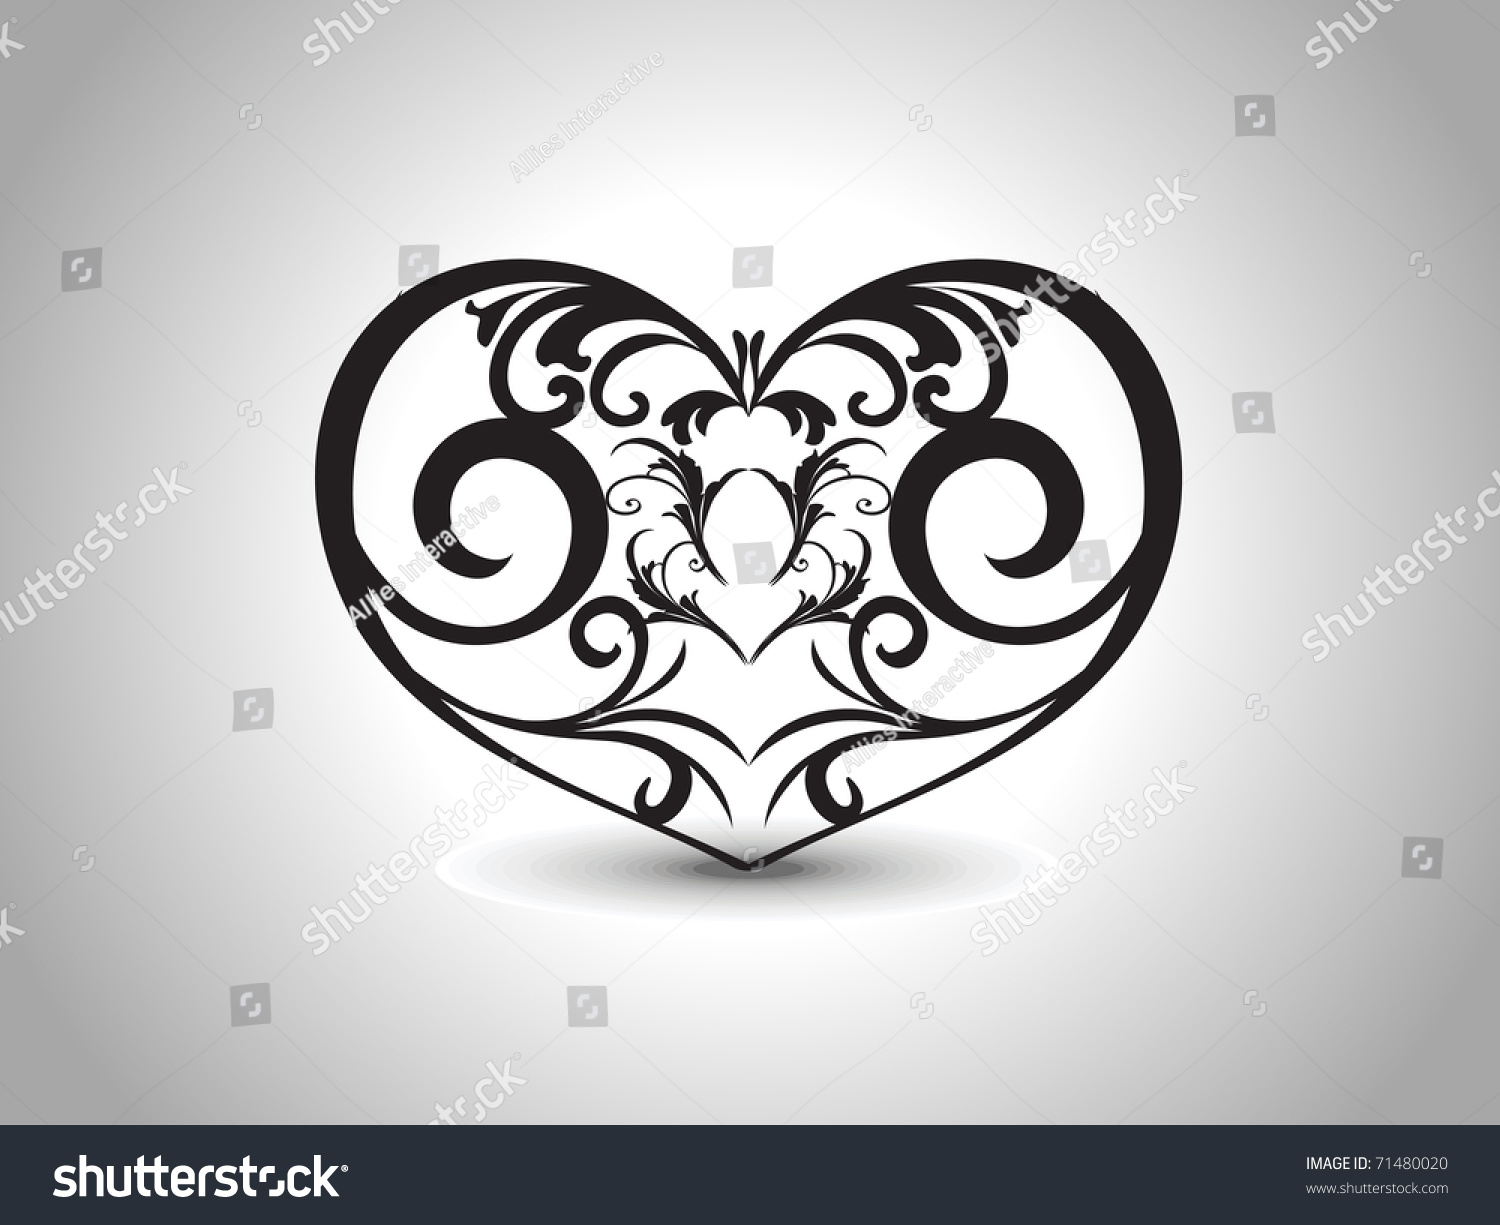 abstract grey background with isolated black creative design heart tattoo stock vector. Black Bedroom Furniture Sets. Home Design Ideas